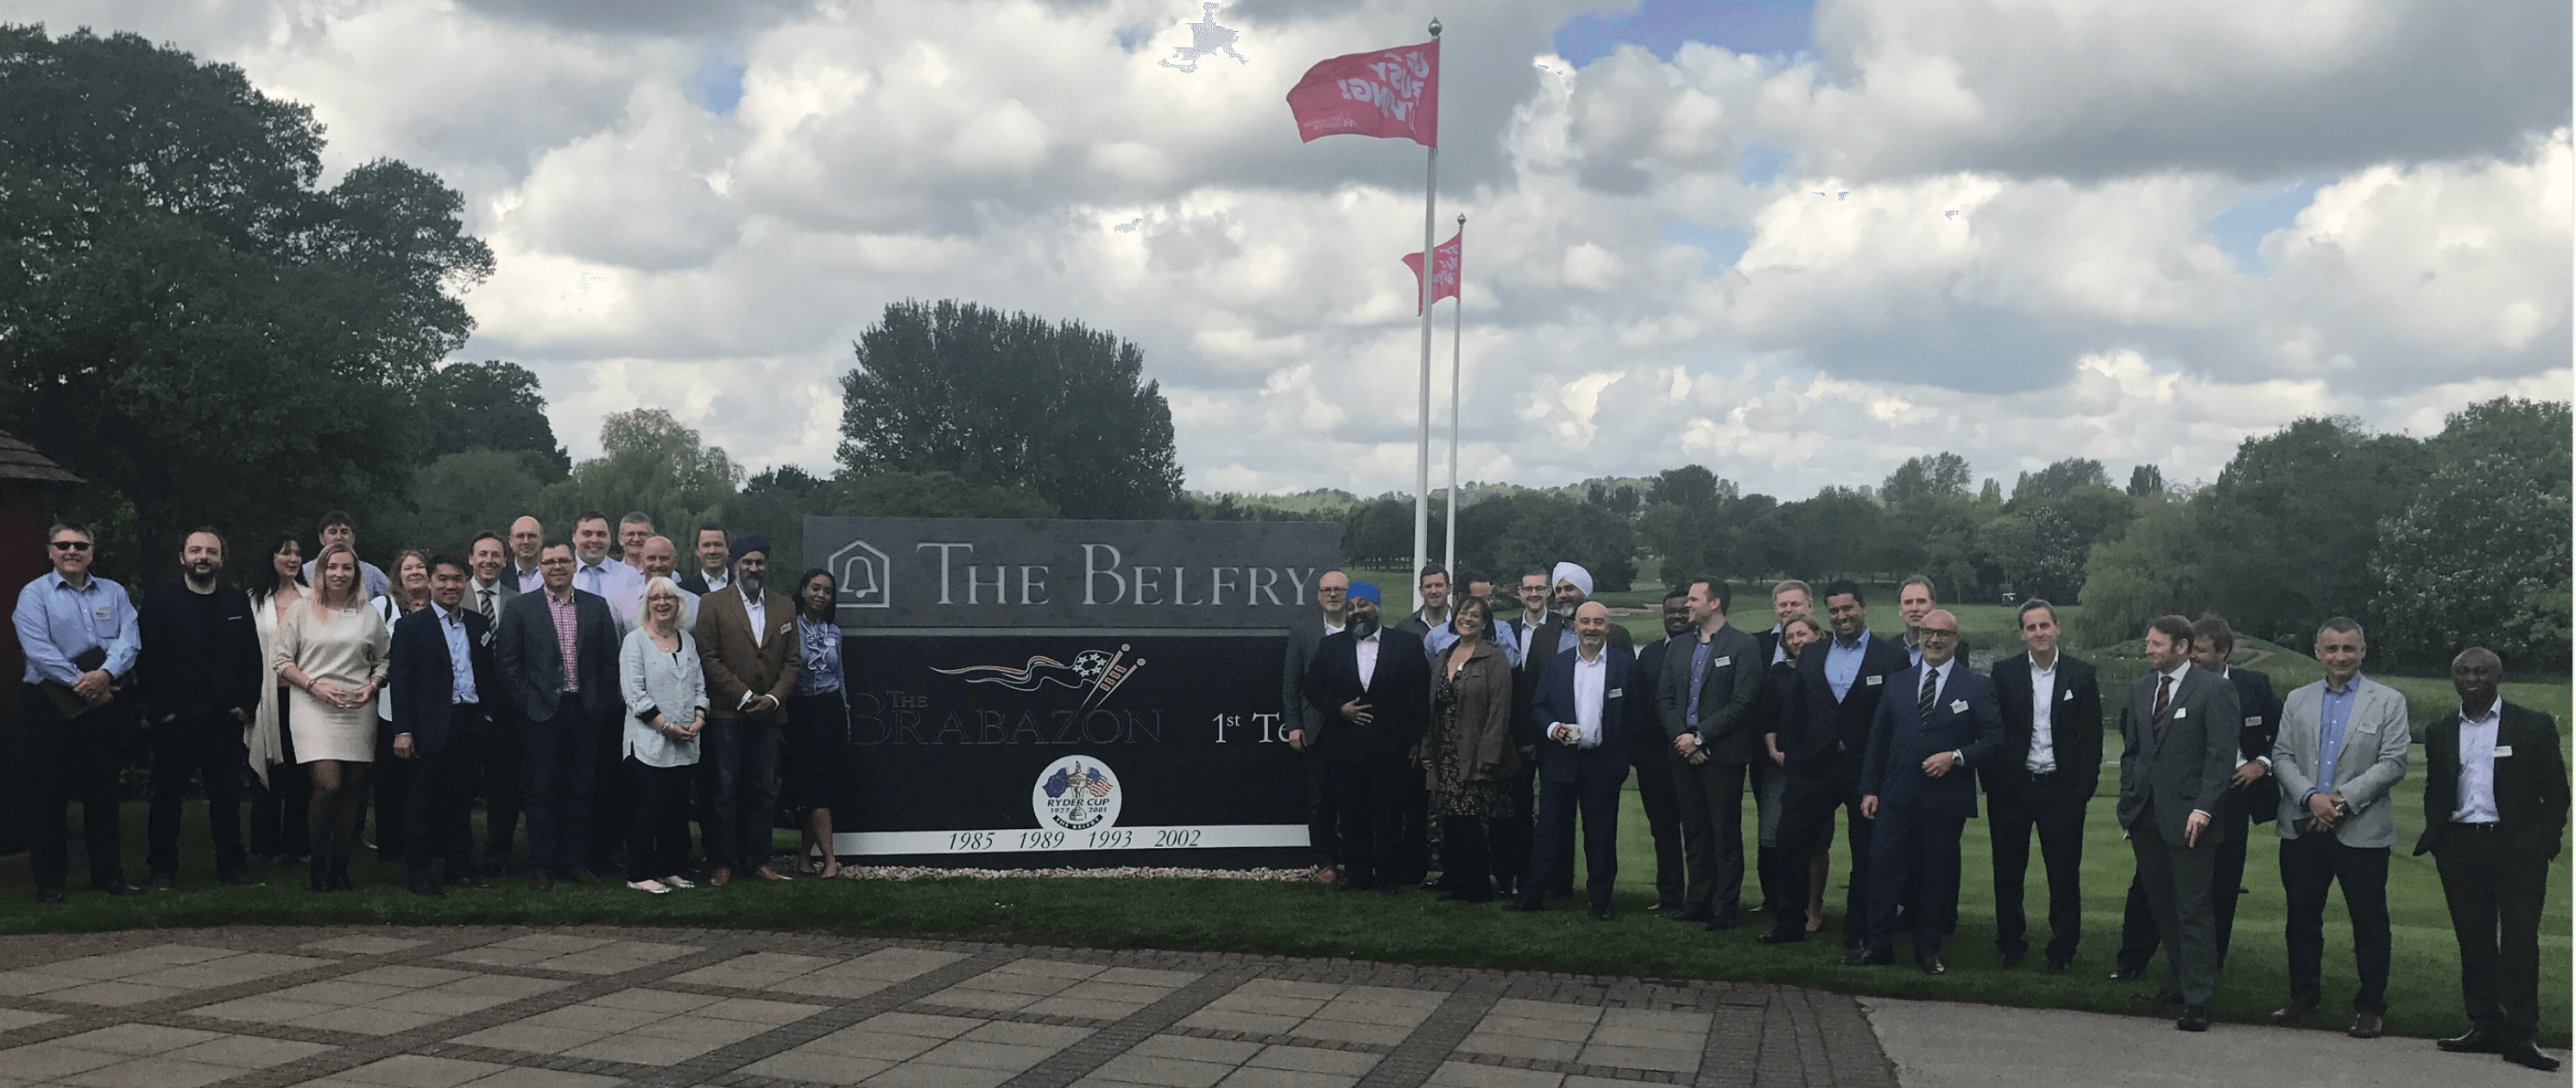 CMA Host Inaugural Wisdom of Crowds Live Event at The Belfry